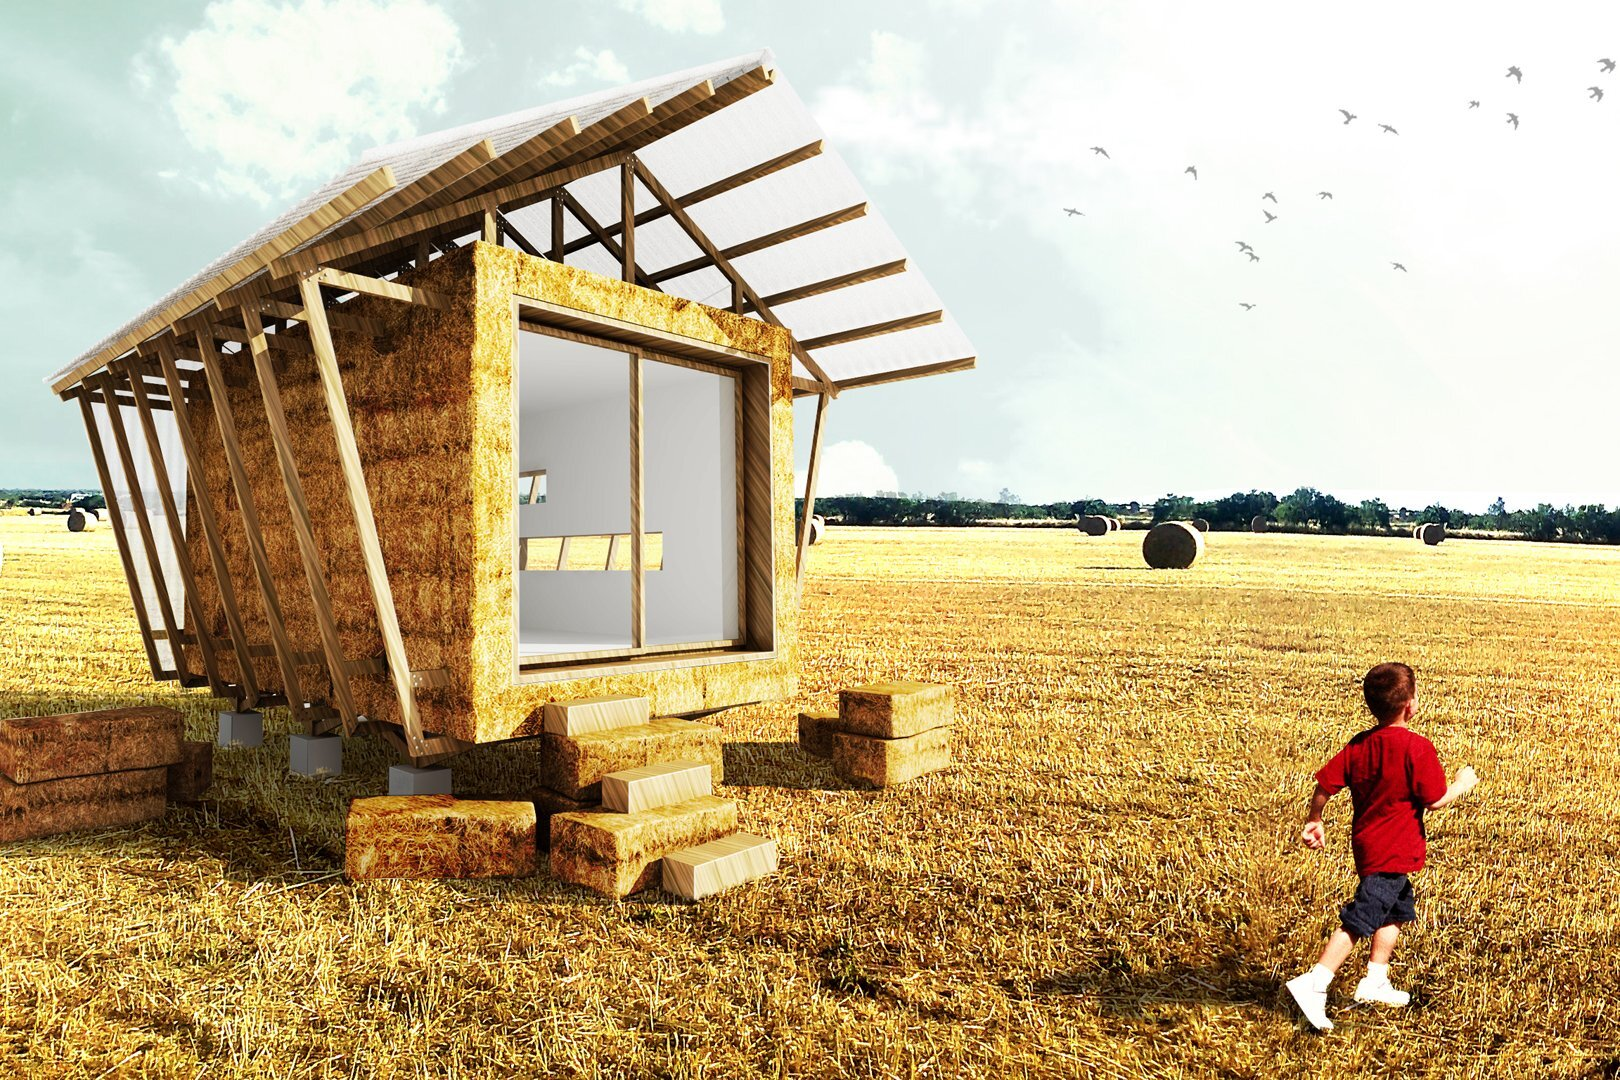 Information Booth Built From Strawbales By Studio 1984